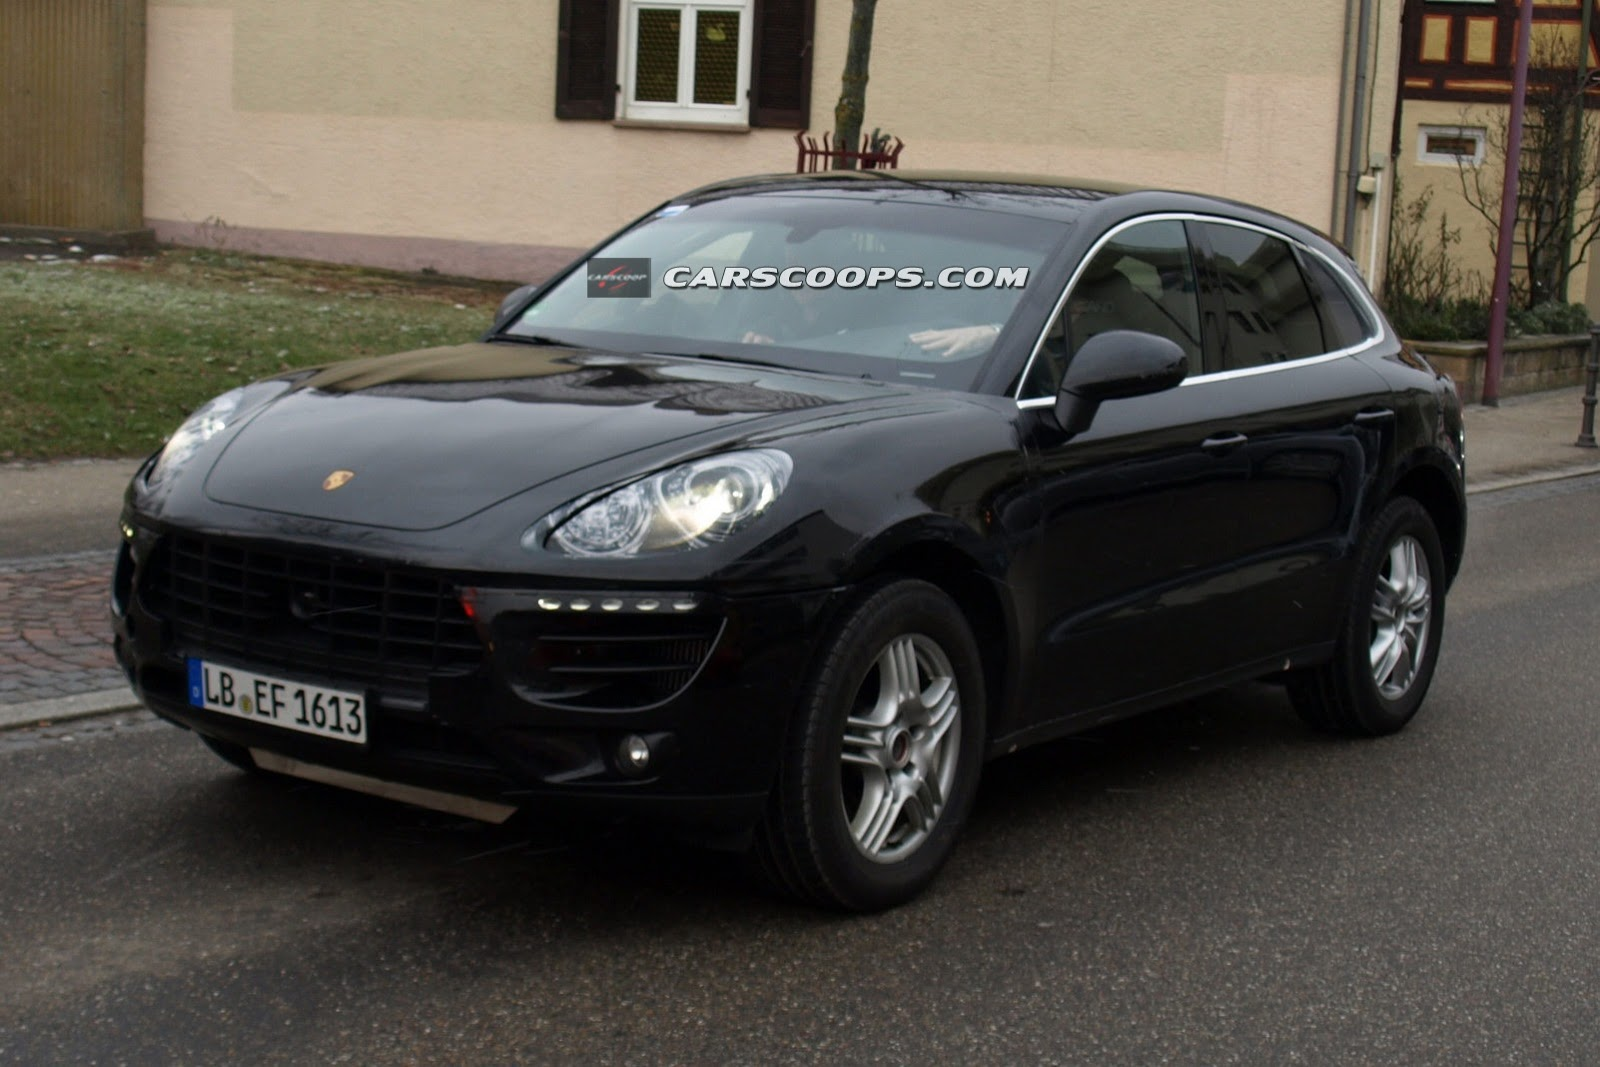 2014 Porsche Macan spied at the interior